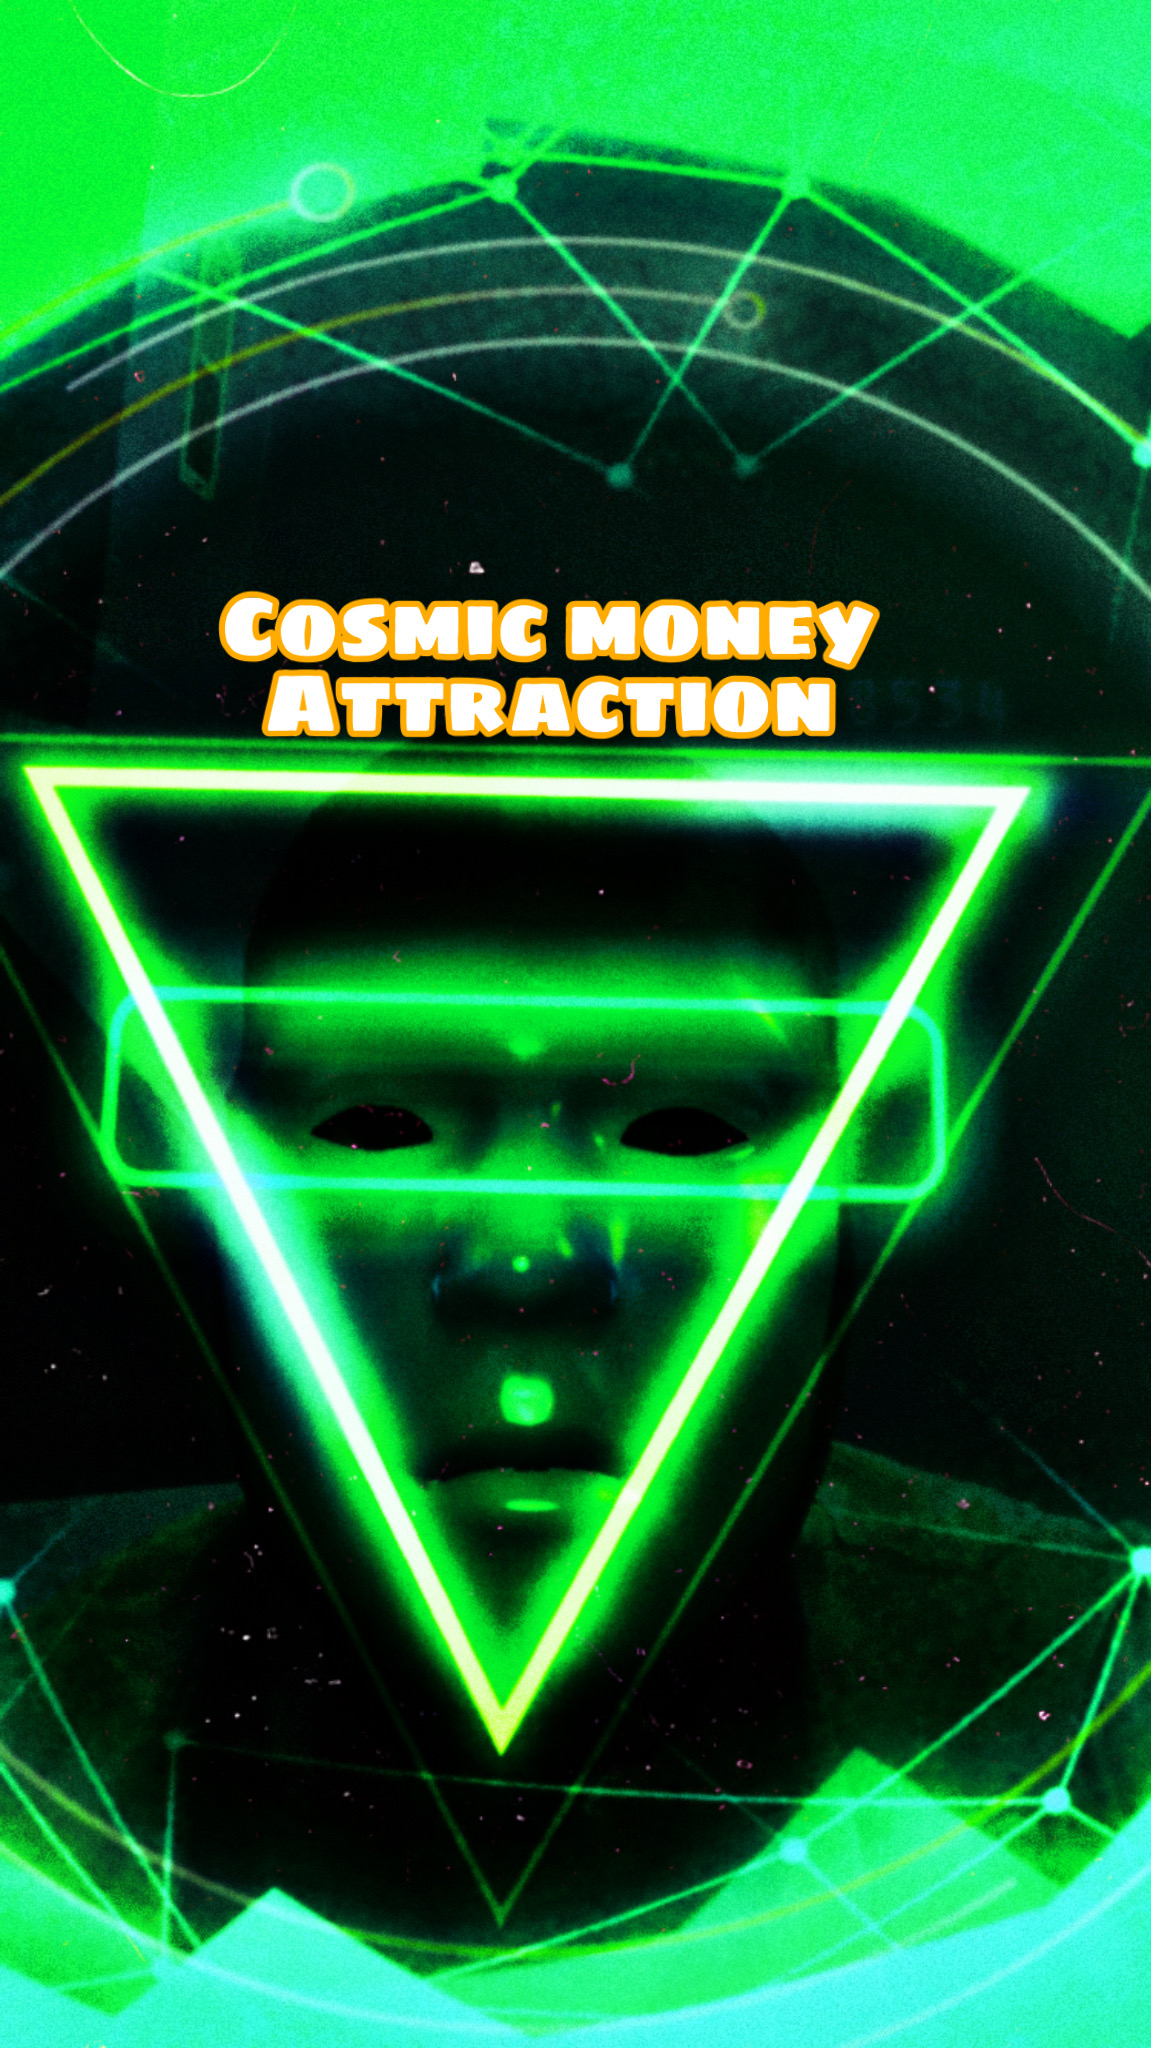 Cosmic money attraction